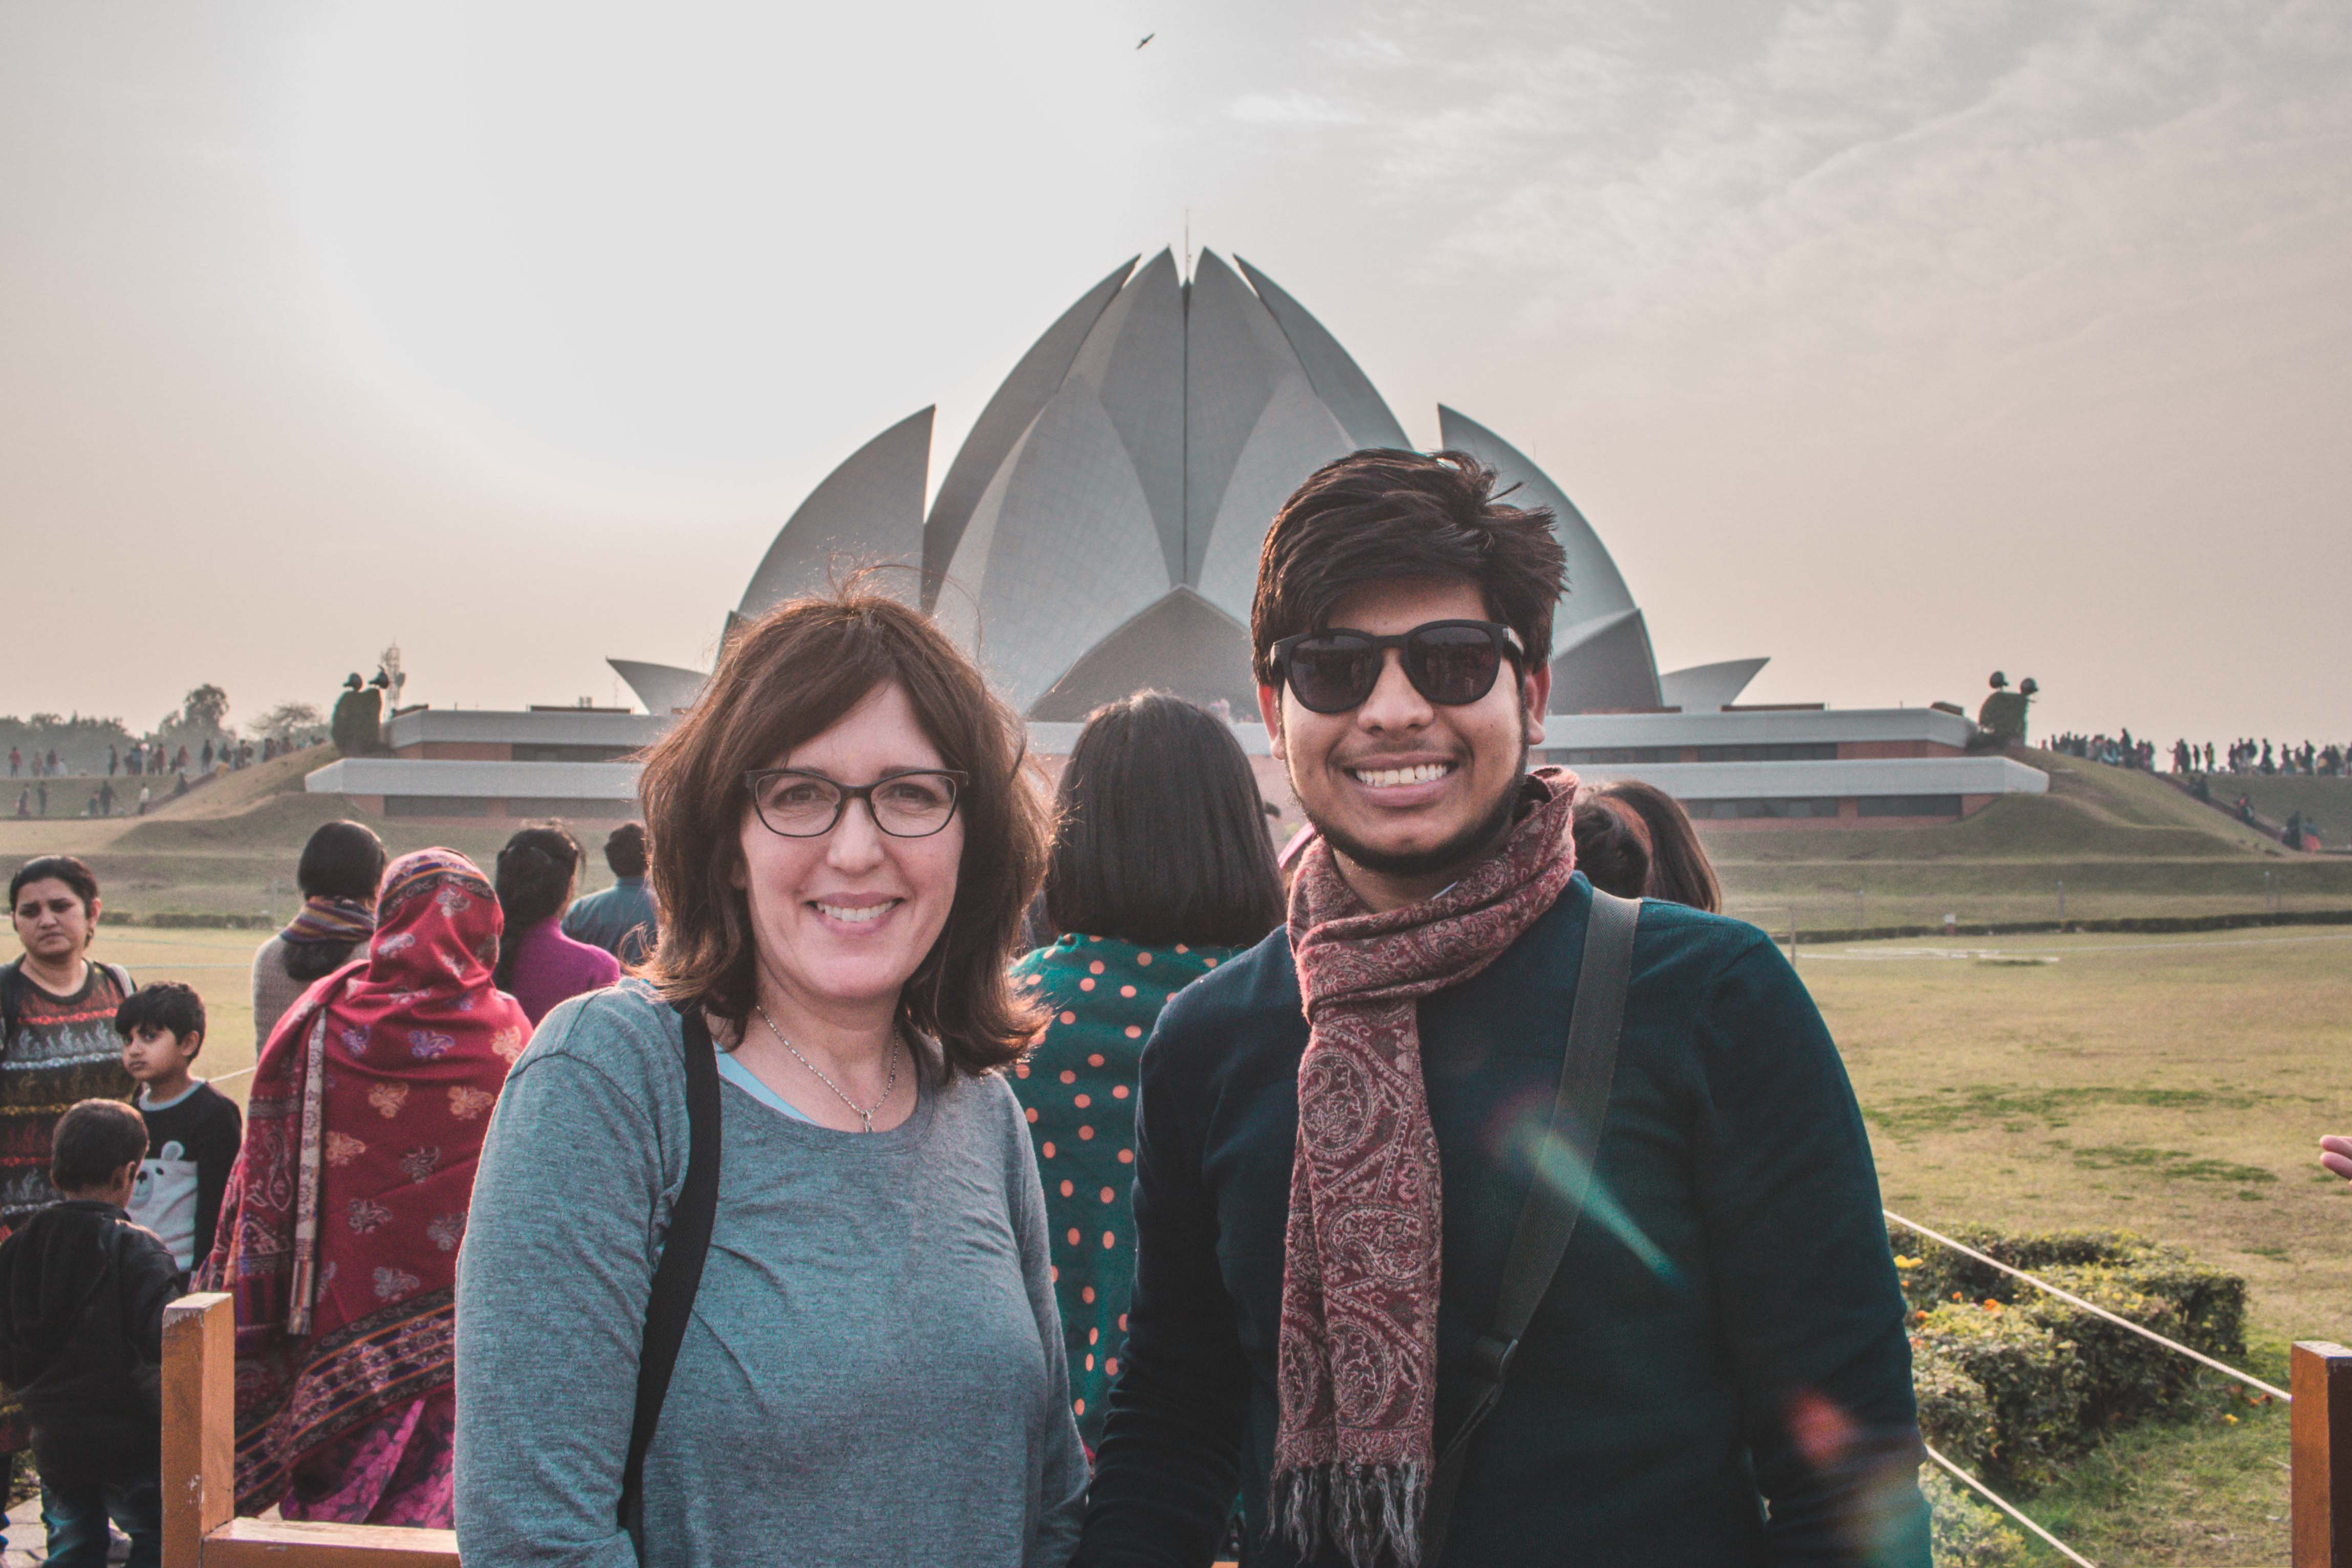 Full Day Adventure tour of Delhi with a local guide and hotel pick-up & drop-off